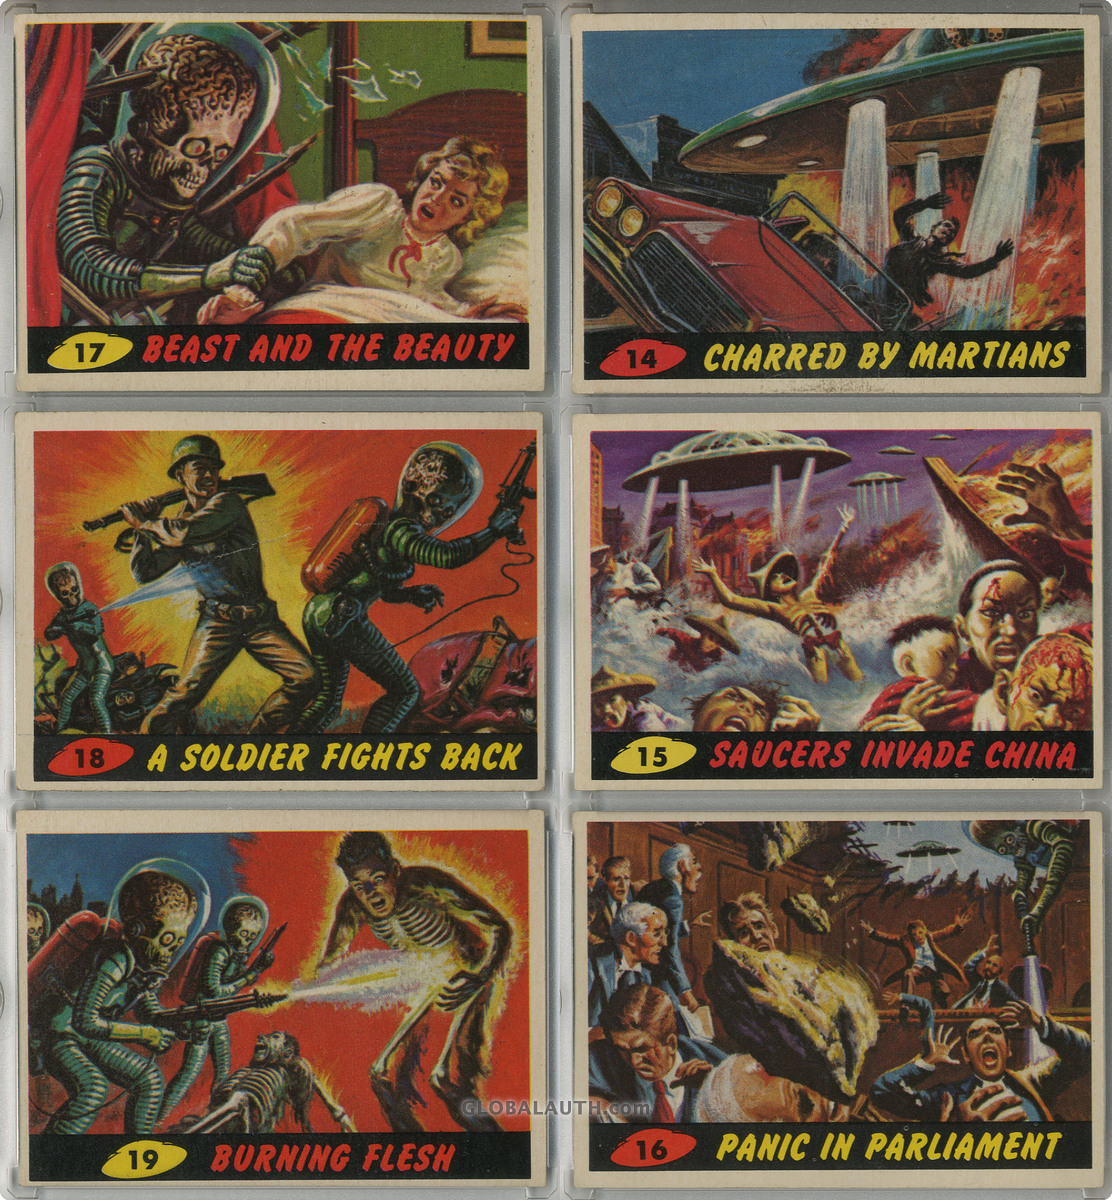 1962-mars-attacks-non-sports-card-set-set-images.jpg, #4